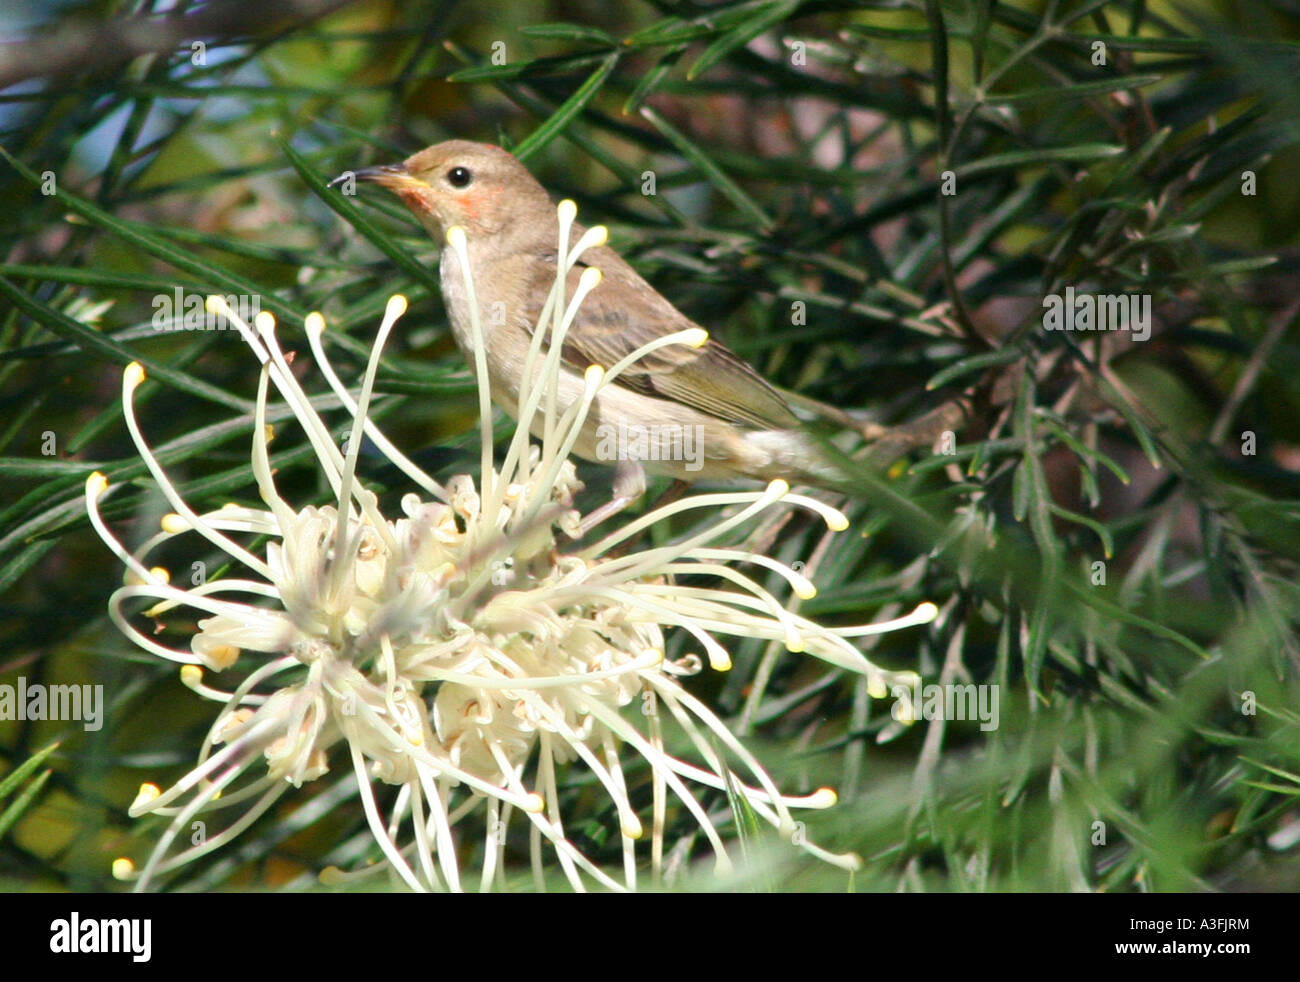 A FEMALE SCARLET HONEYEATER FEEDING ON GREVILLEA TREES BAPDA9140 - Stock Image